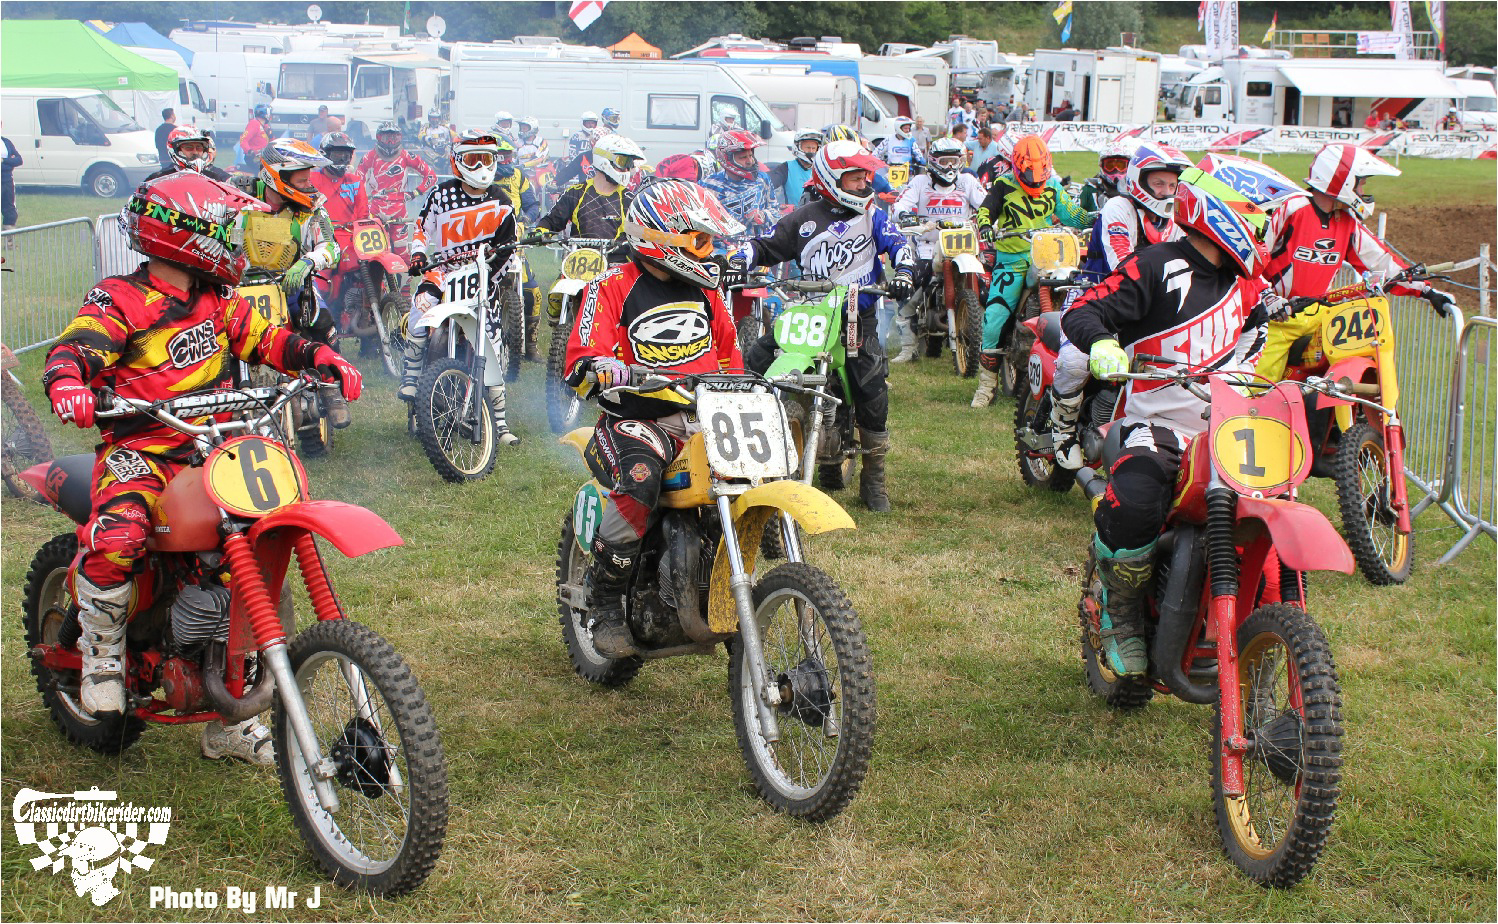 king of the castle 2015 photos Farleigh Castle twinshock motocross classicdirtbikerider.com 16